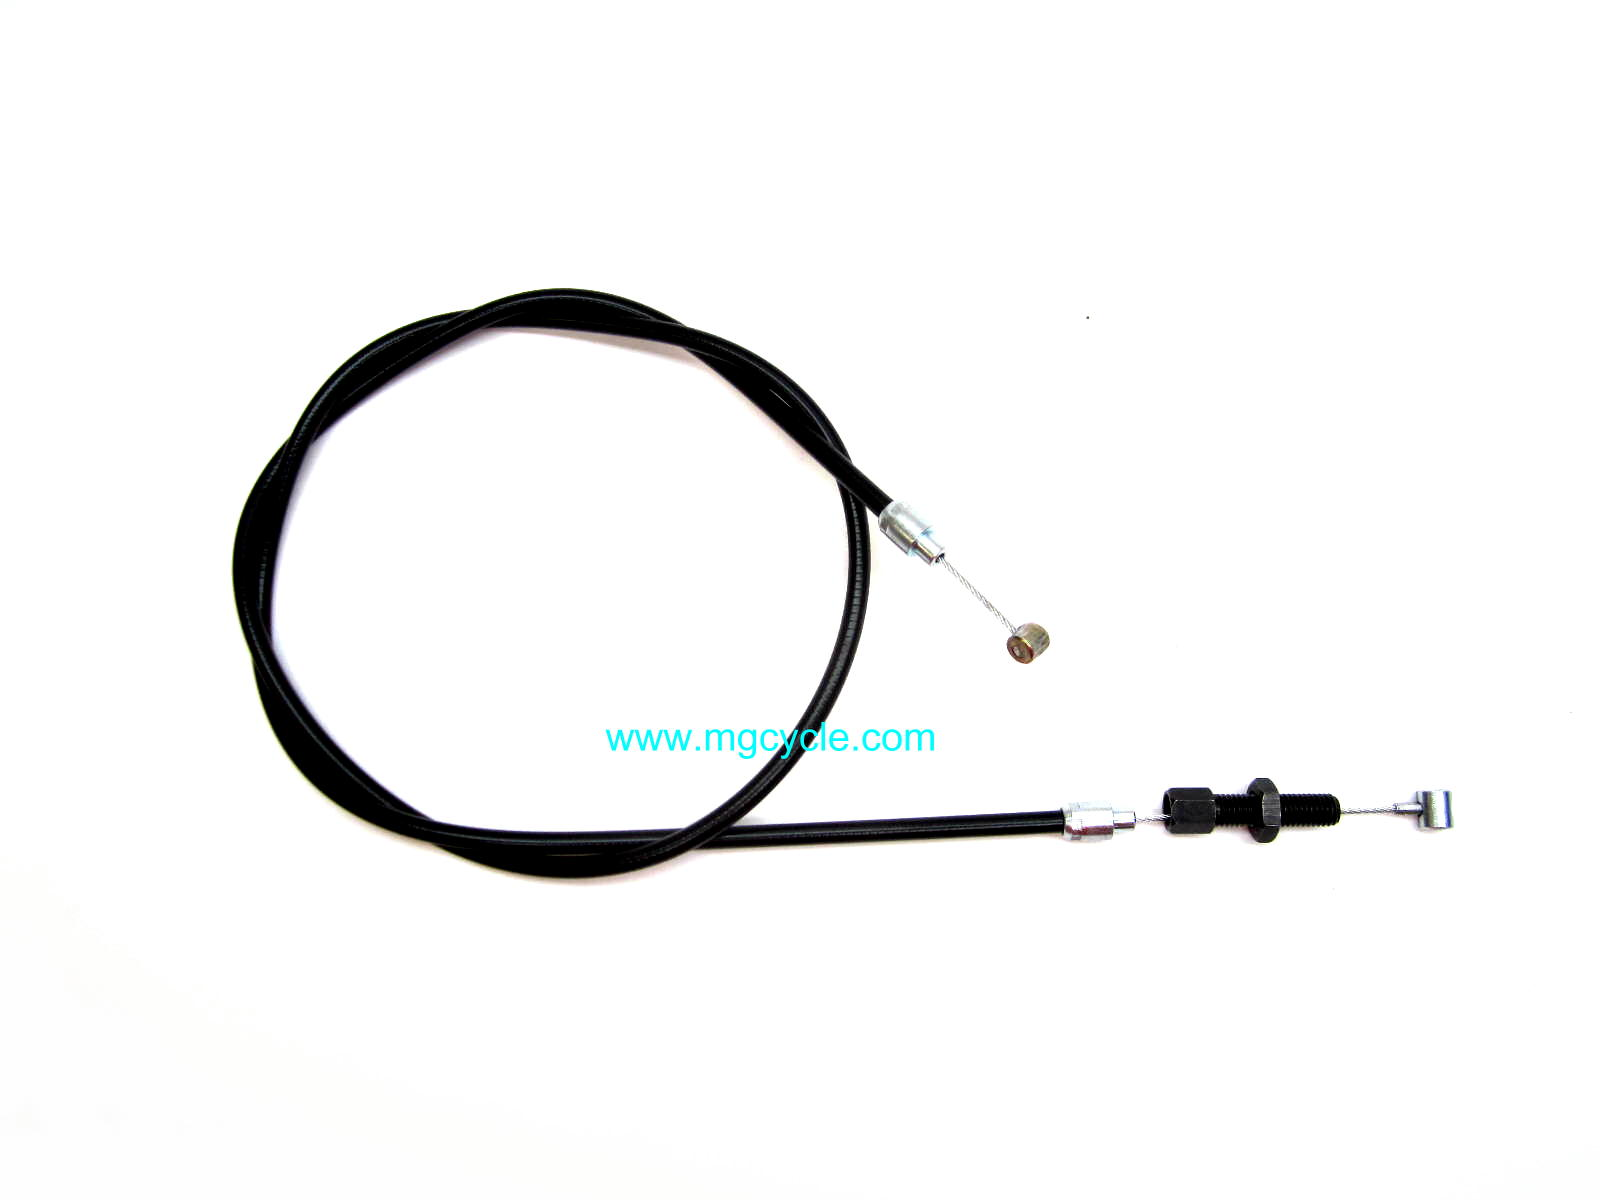 clutch cables : MG Cycle, Moto Guzzi Parts and Accessories